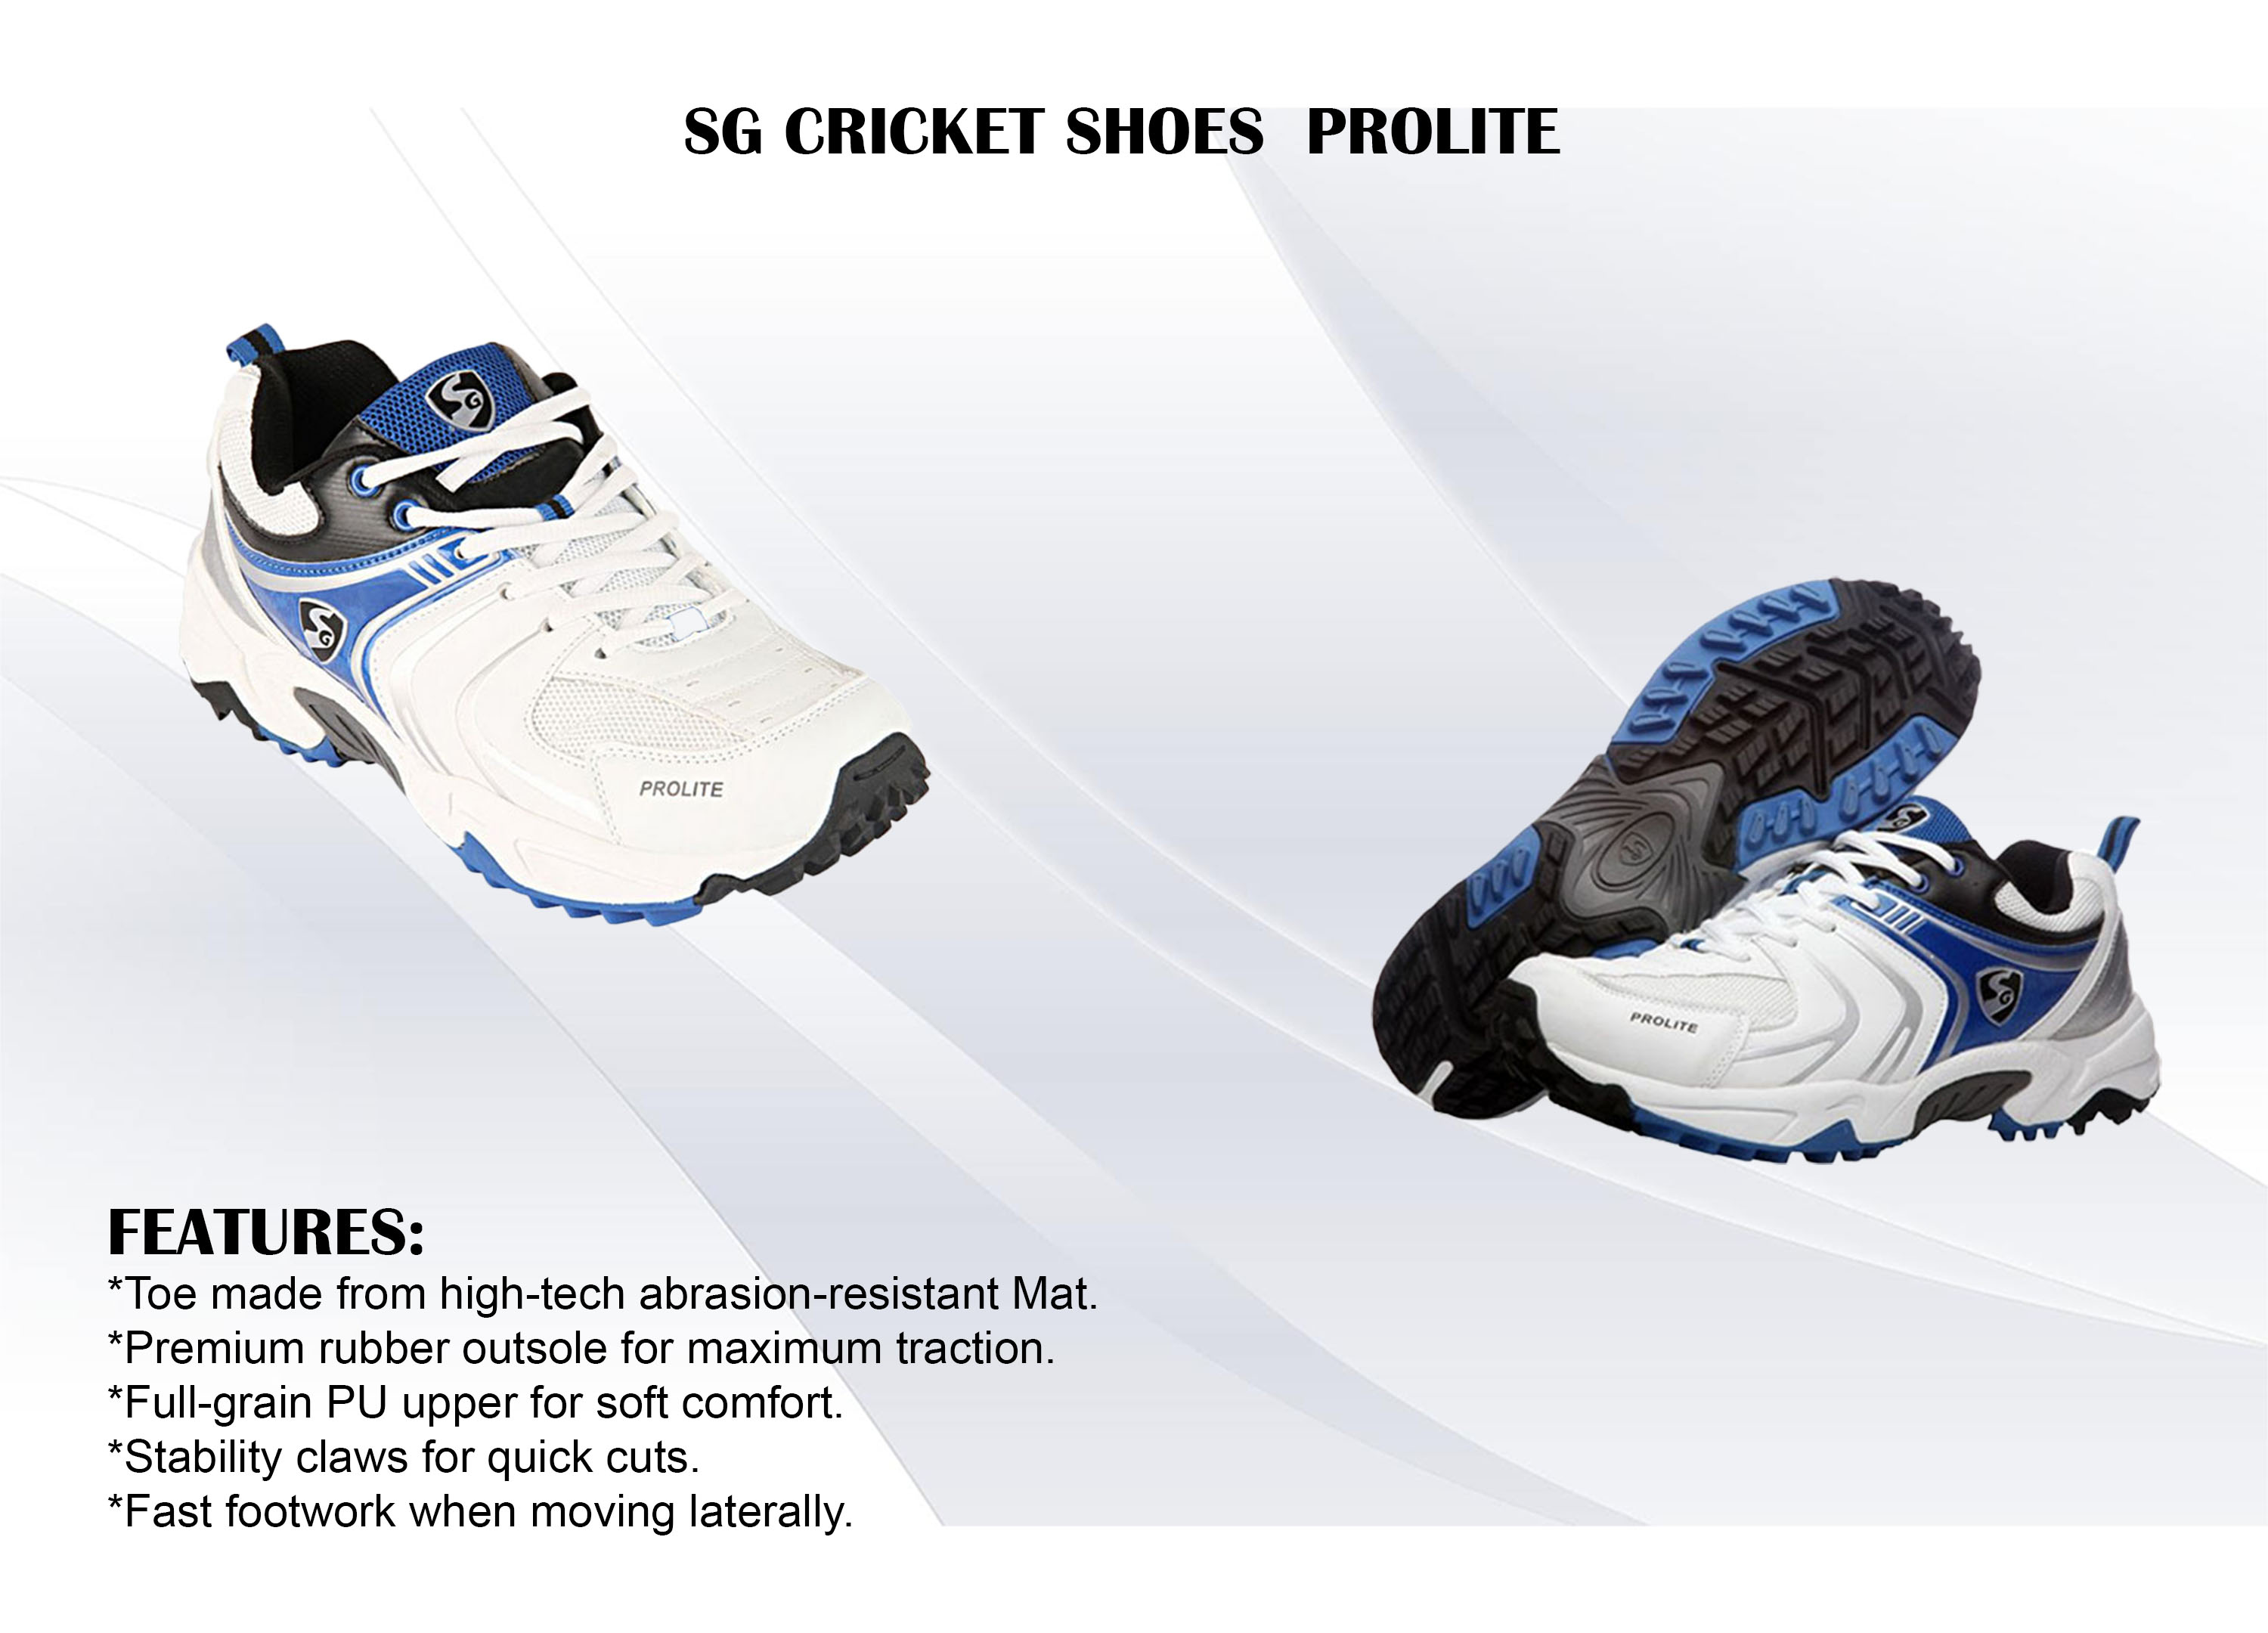 SG CRICKET SHOES PROLITE